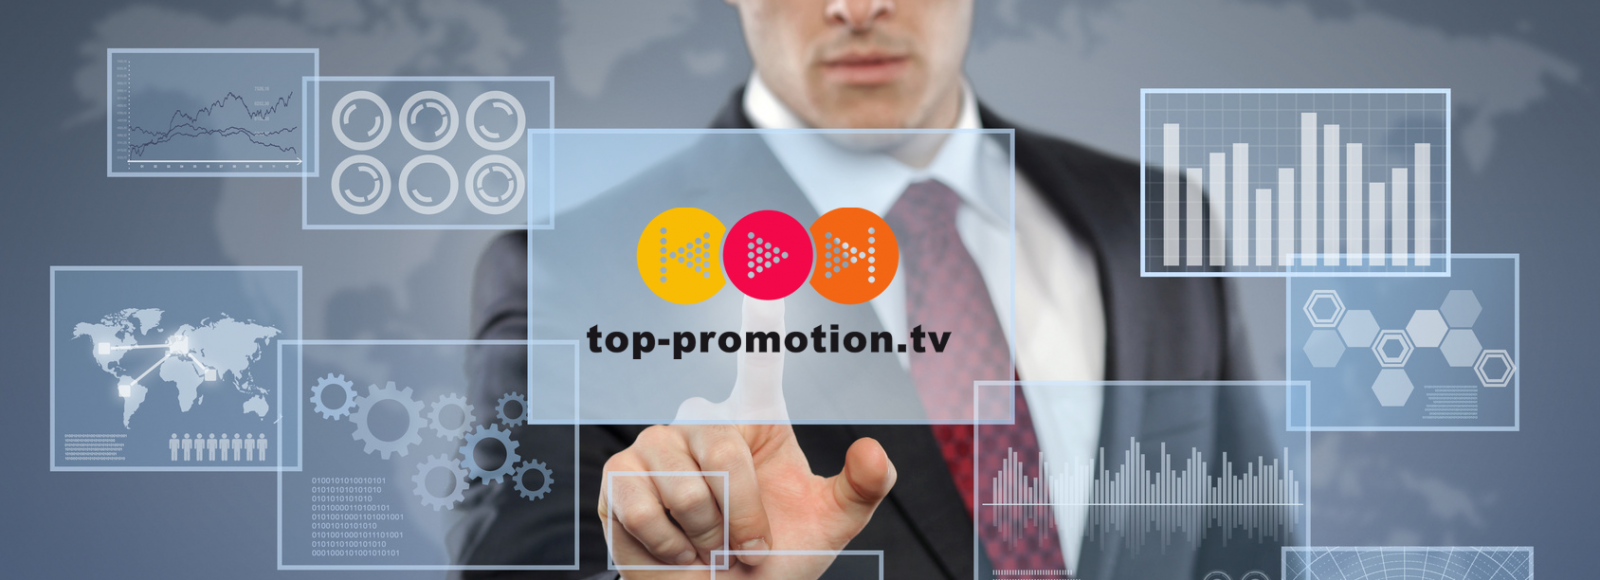 TOP PROMOTION TV